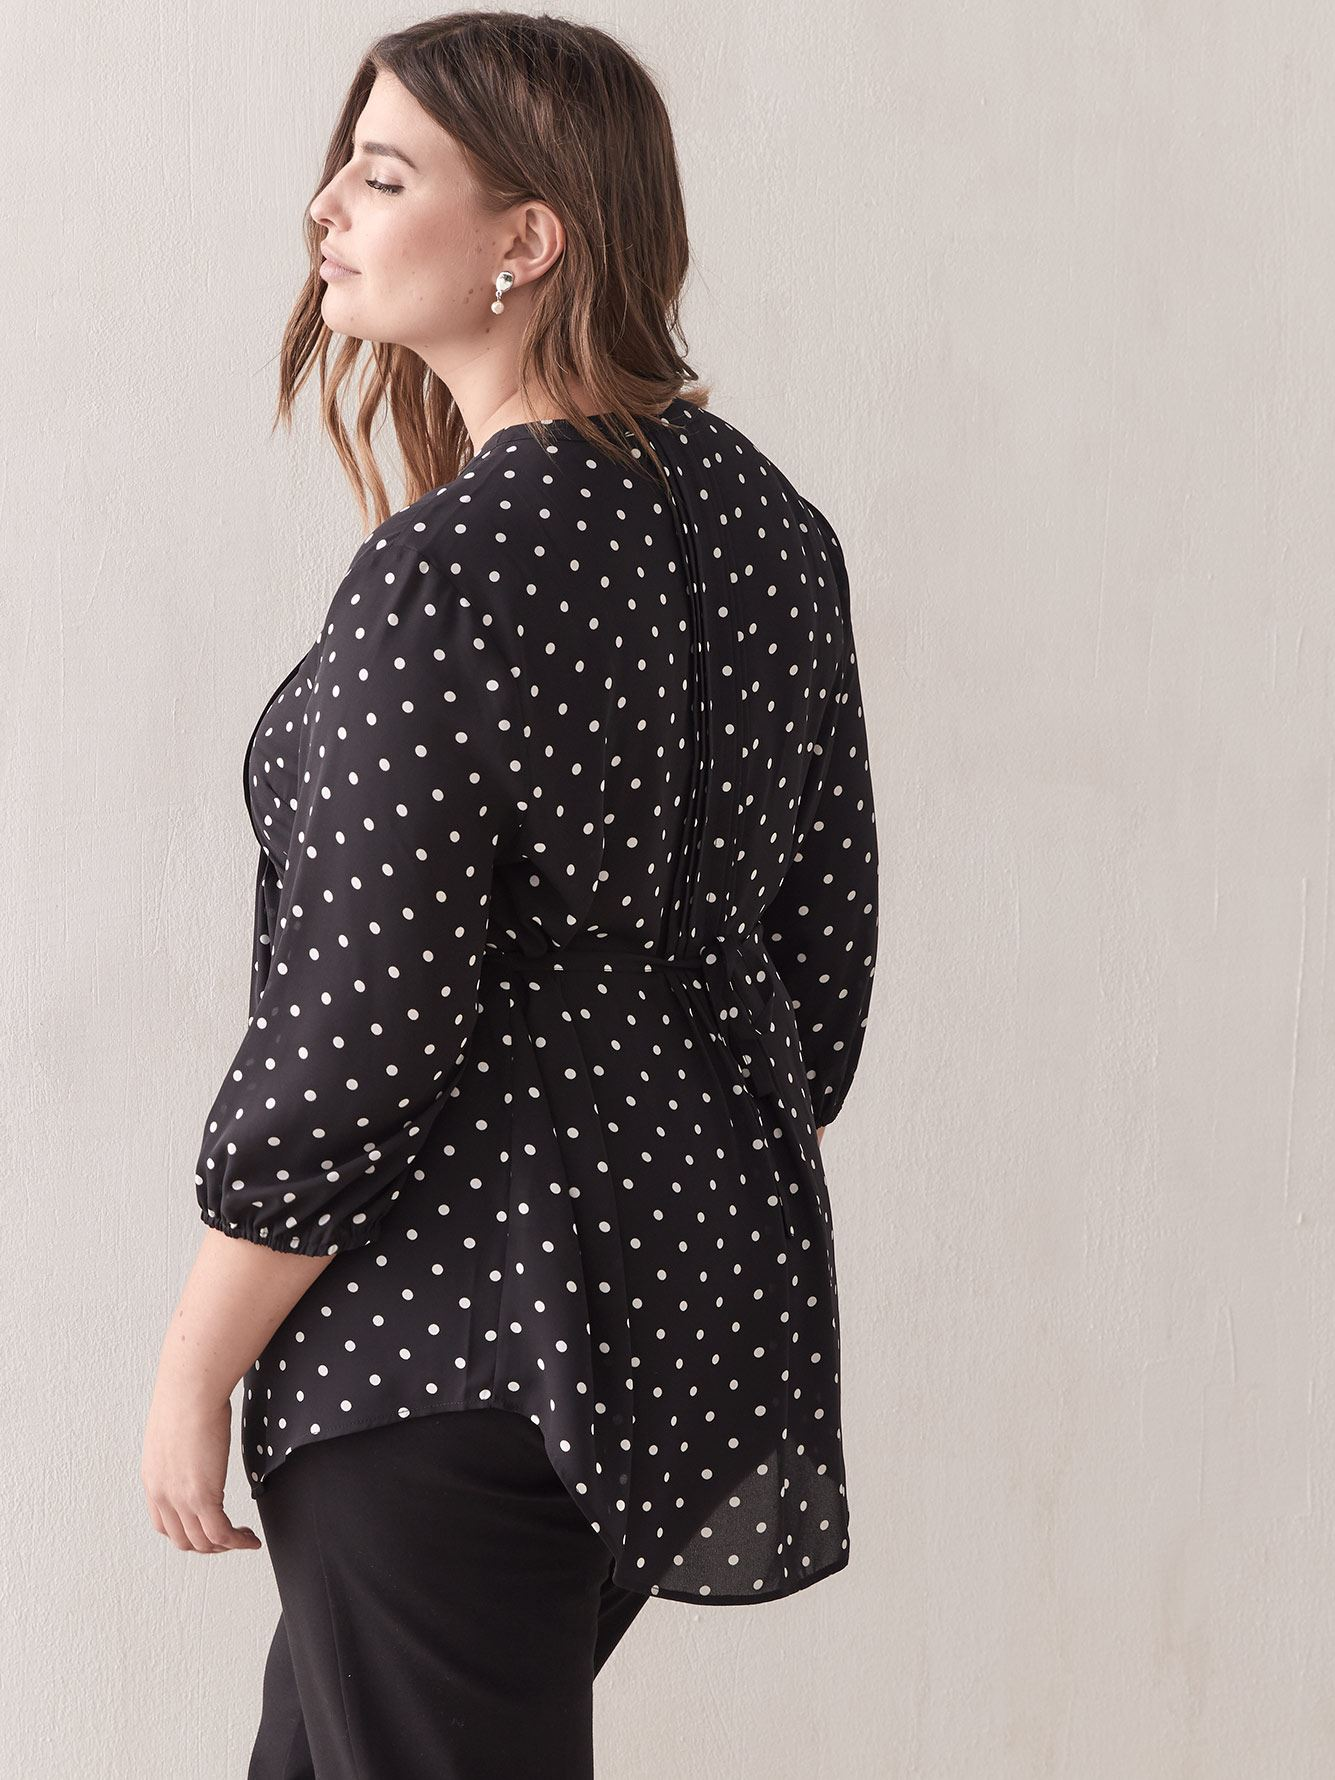 Pin-Tuck Blouse - In Every Story